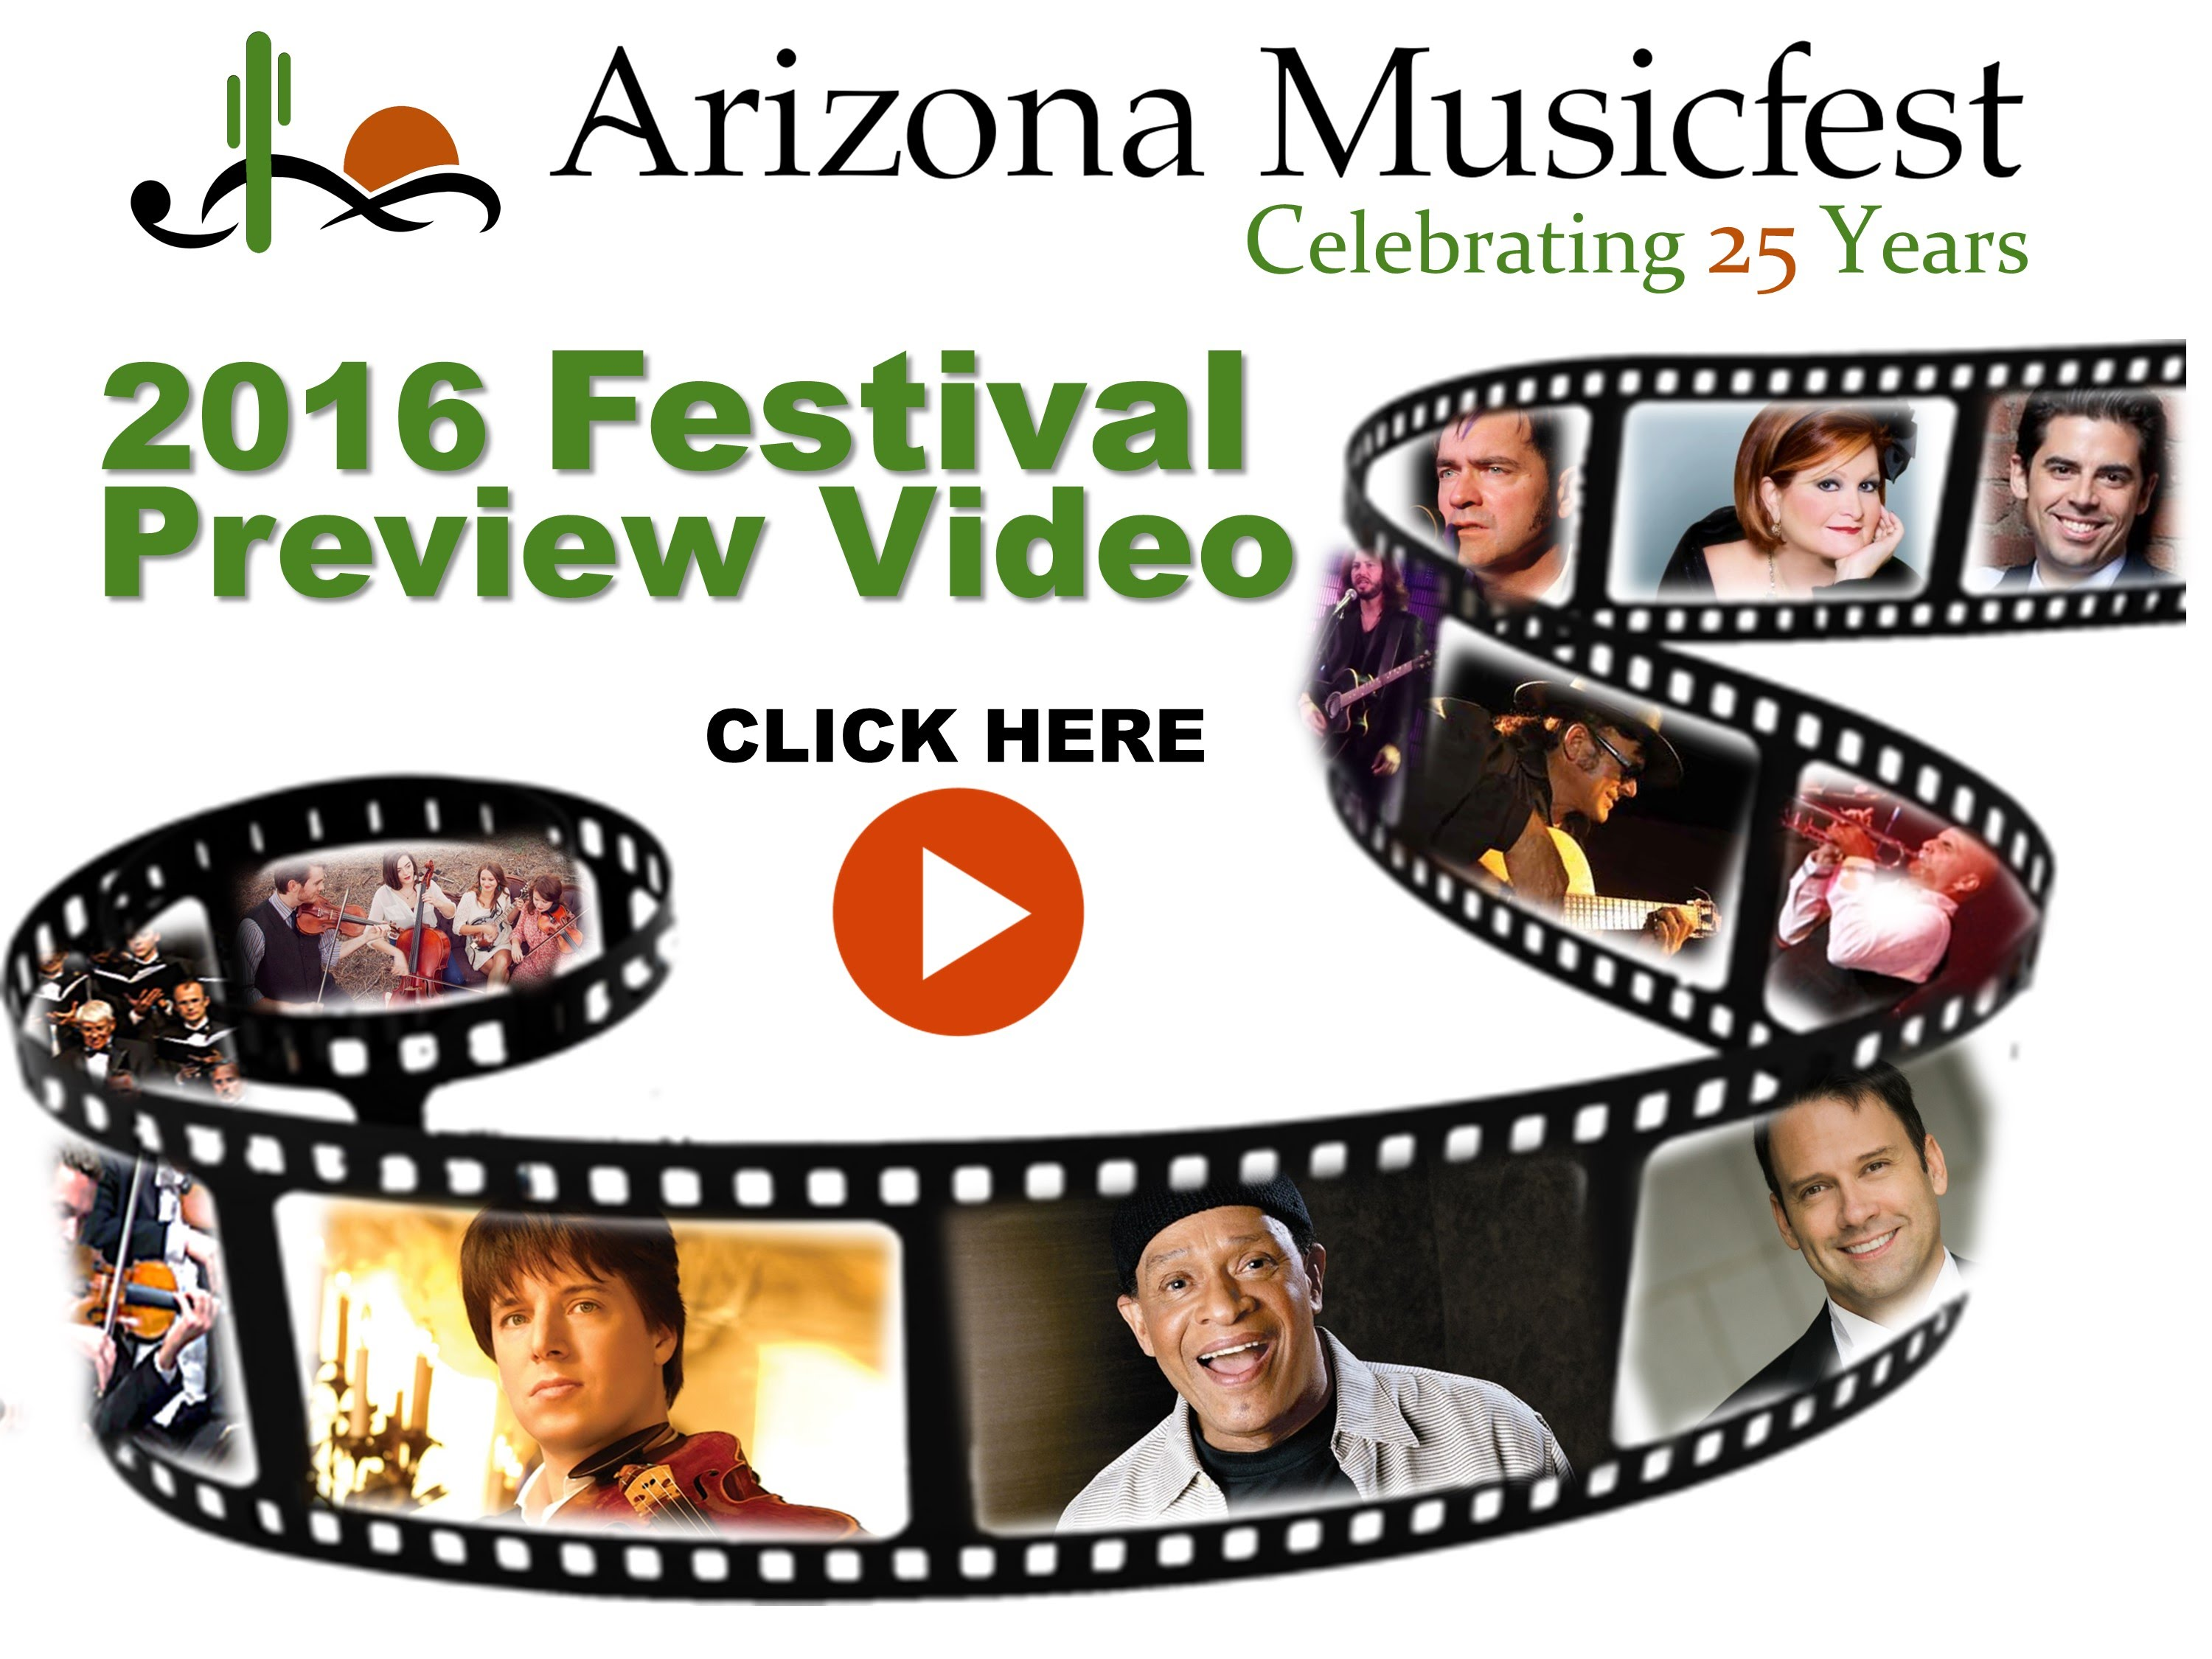 Arizona Musicfest: Six weeks of shows coming to North Scottsdale